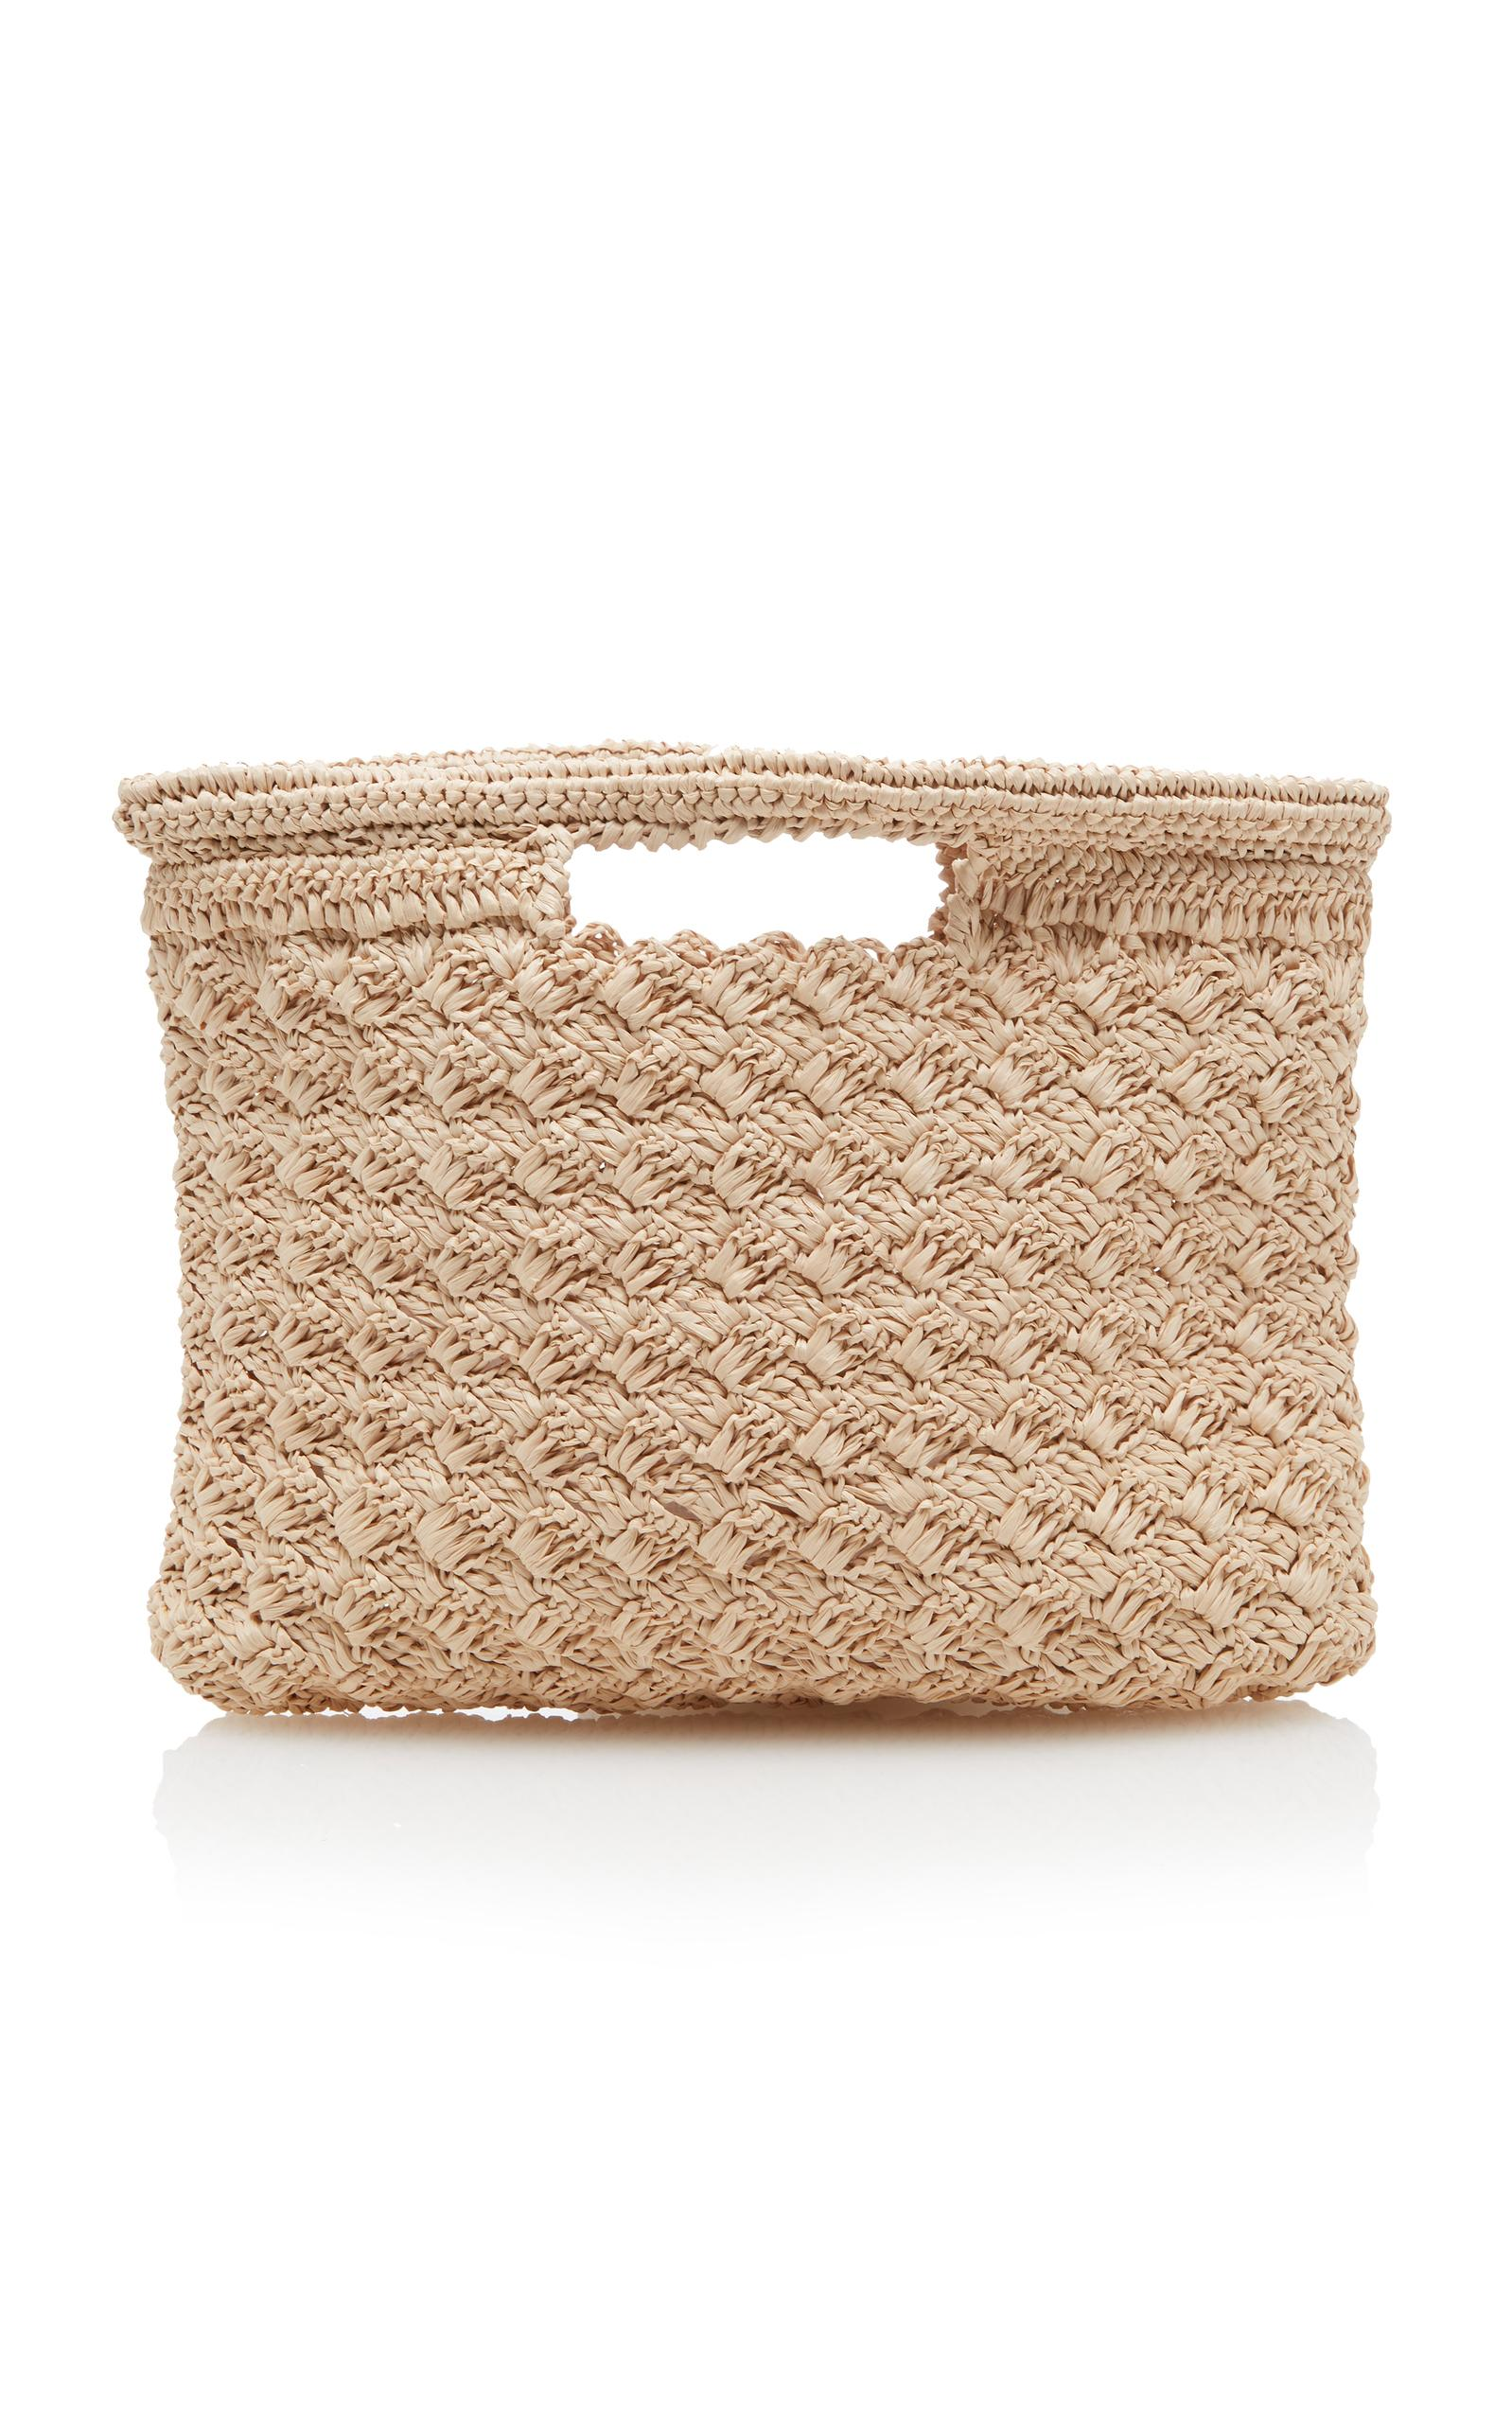 Carrie Forbes Lucy Tote In Neutral